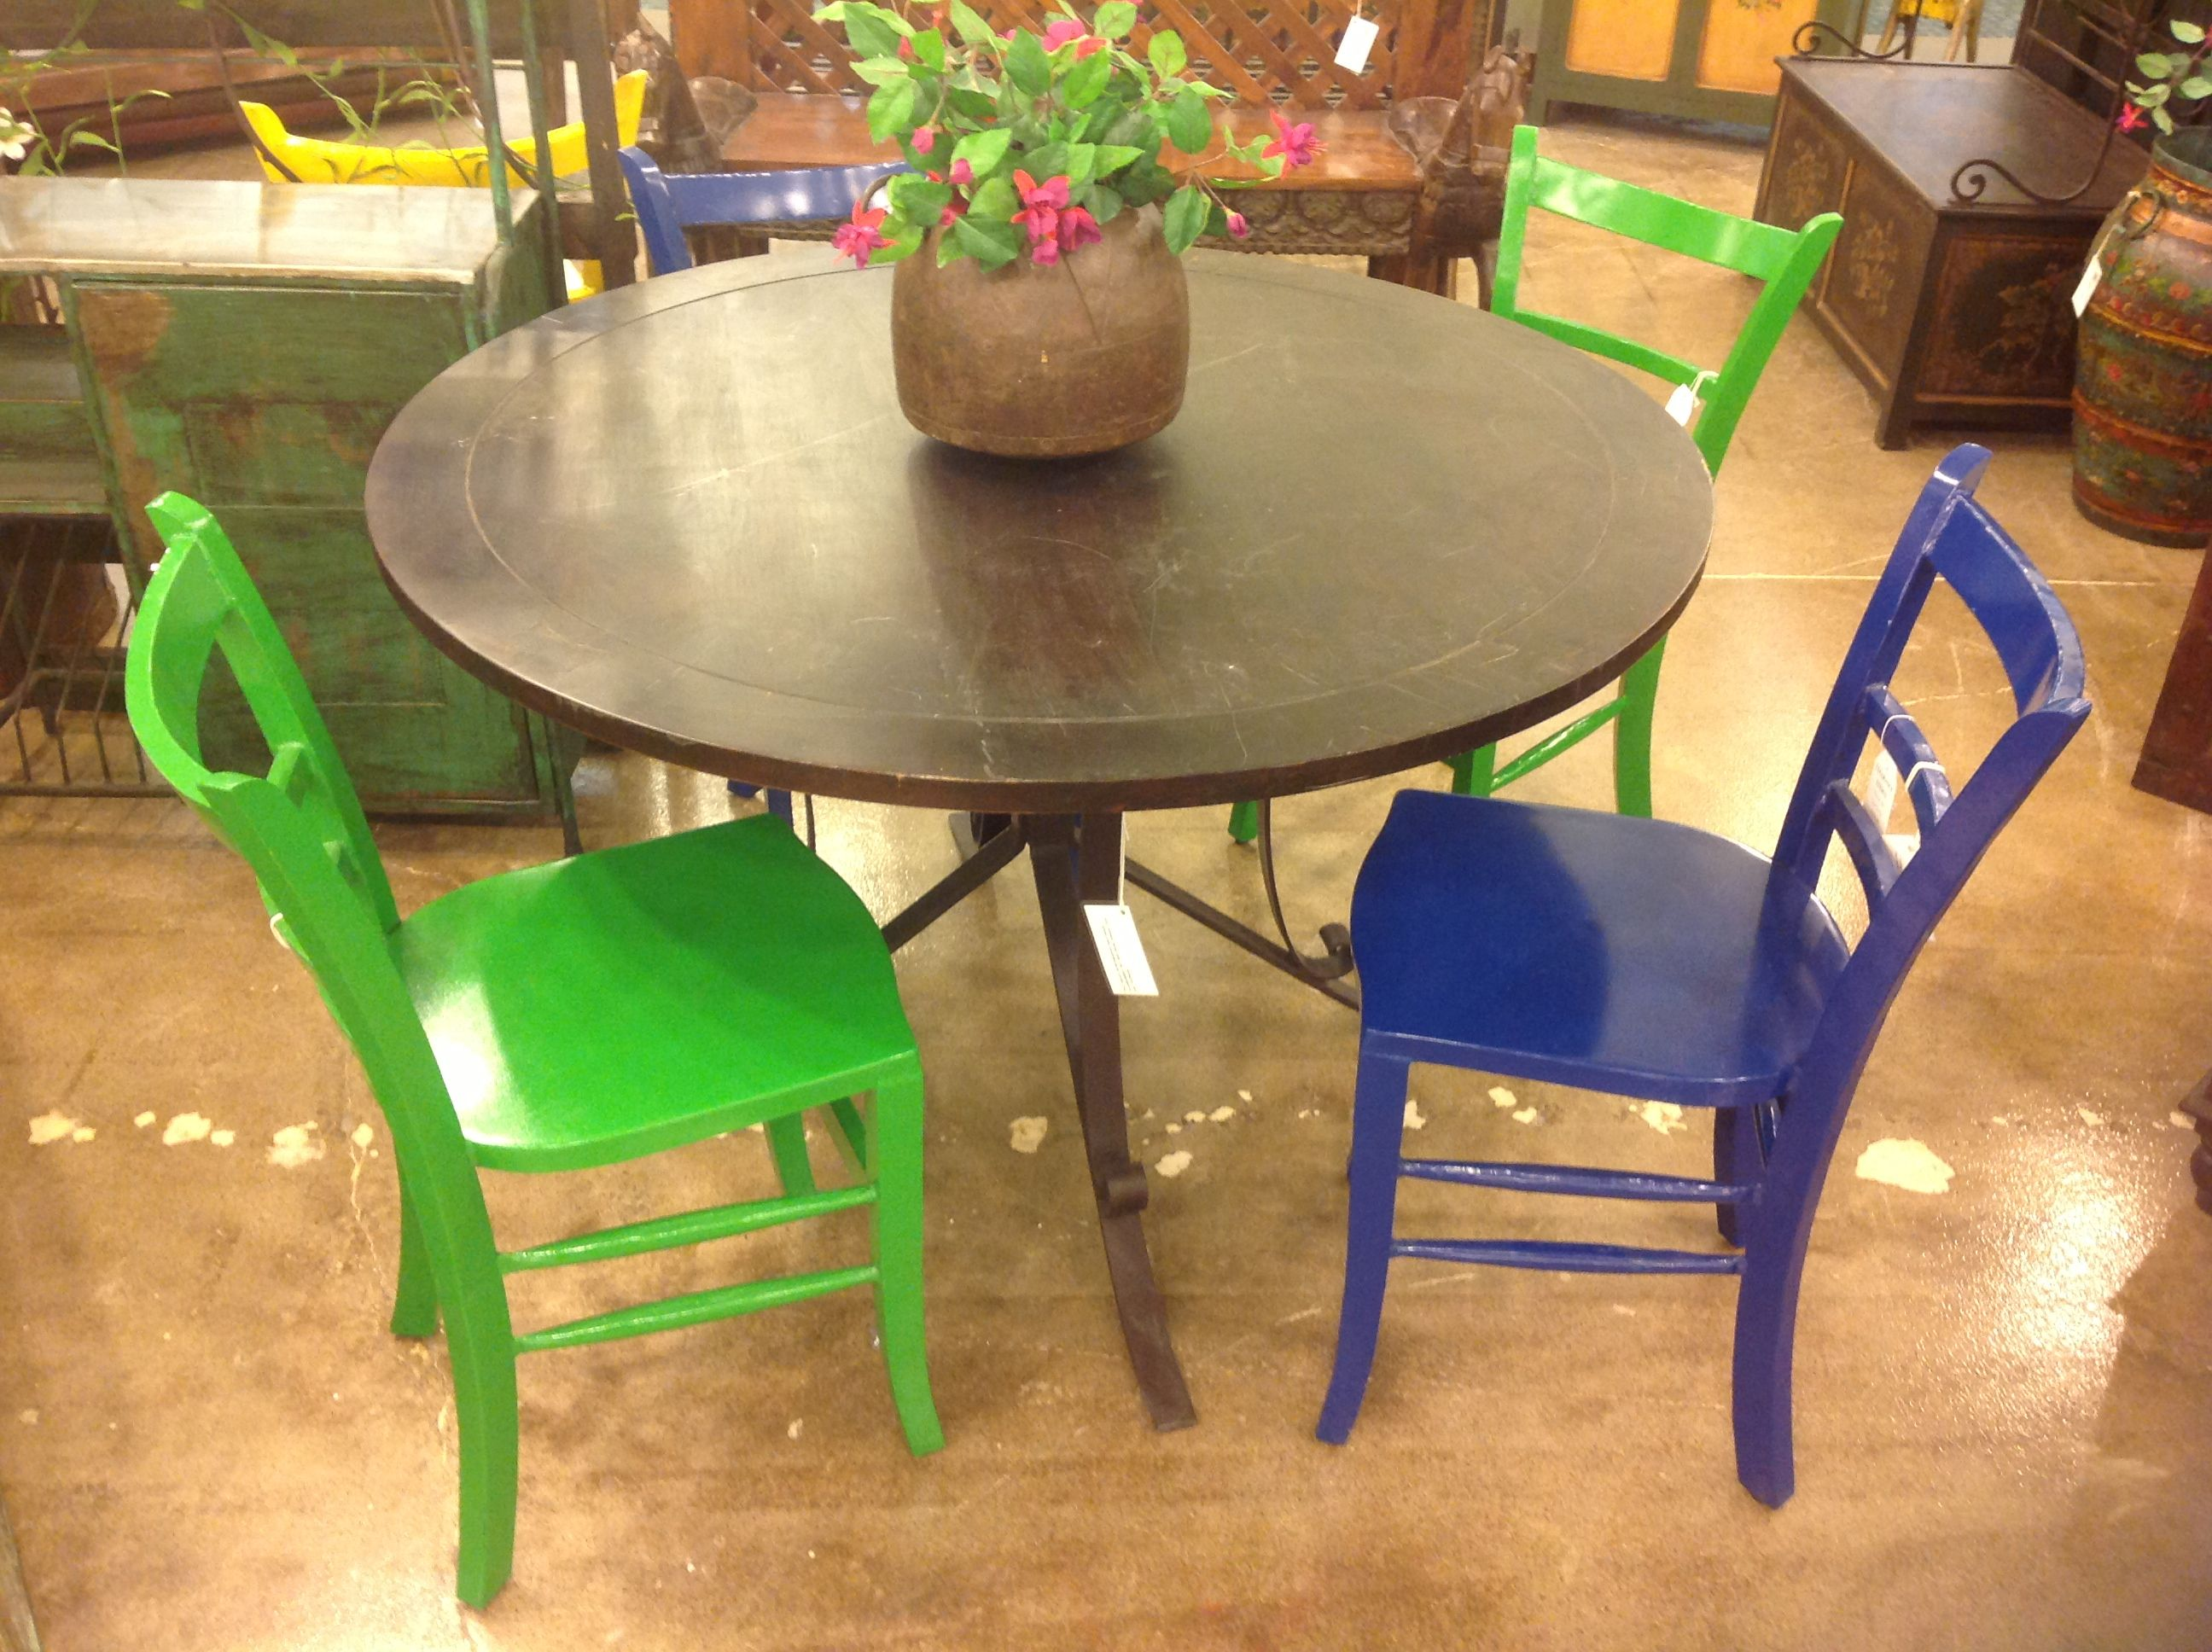 Add a little color to your garden with the Portola round table 48